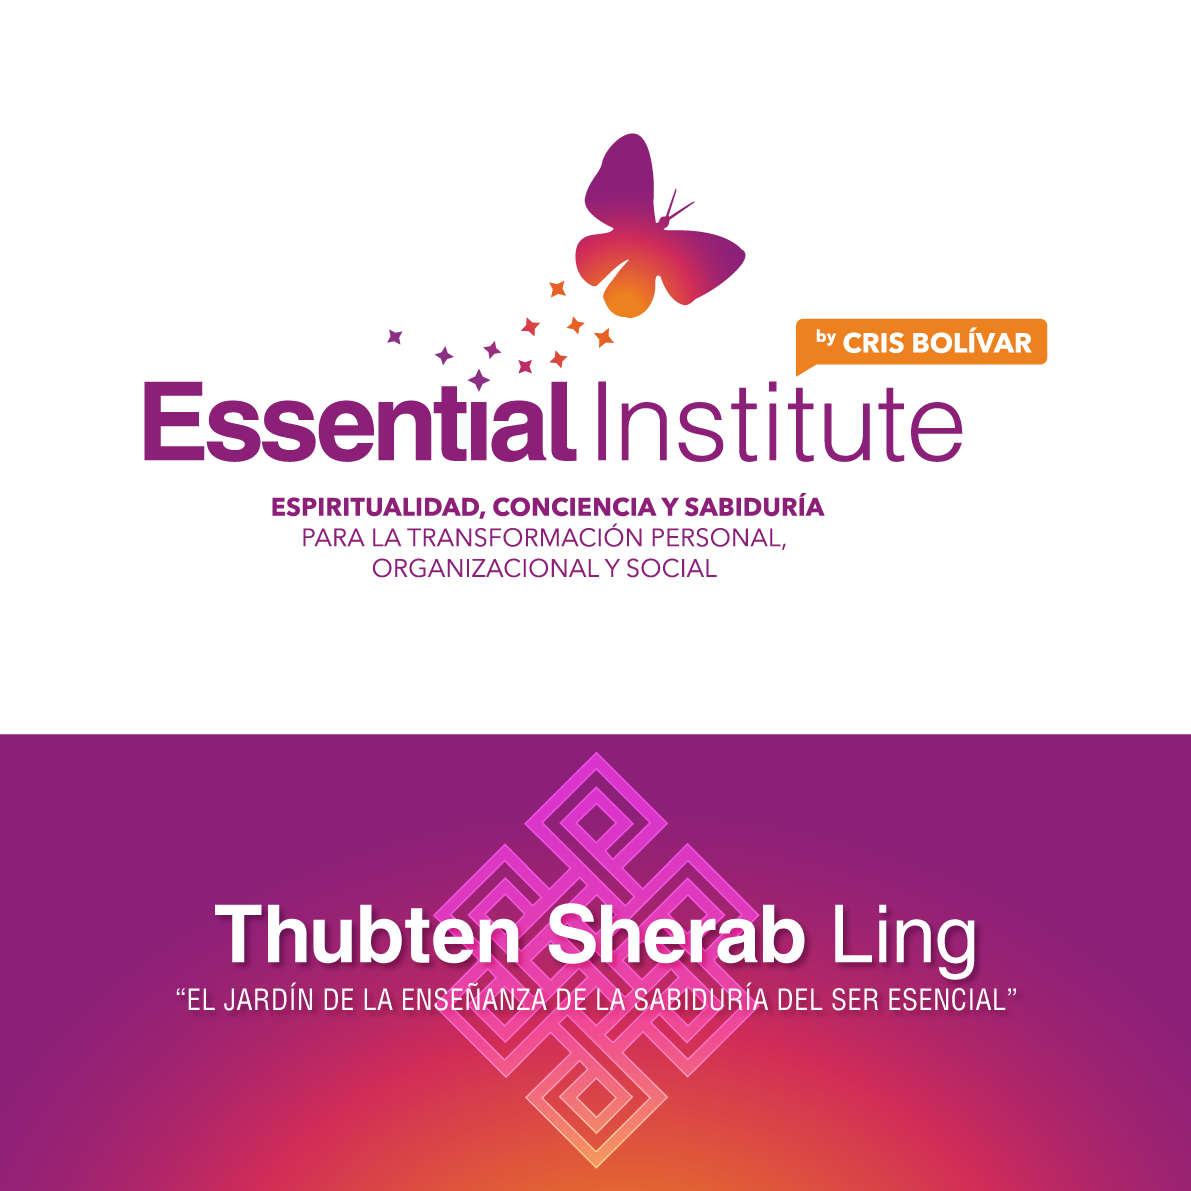 Essential Institute - Thubten Sherab Ling